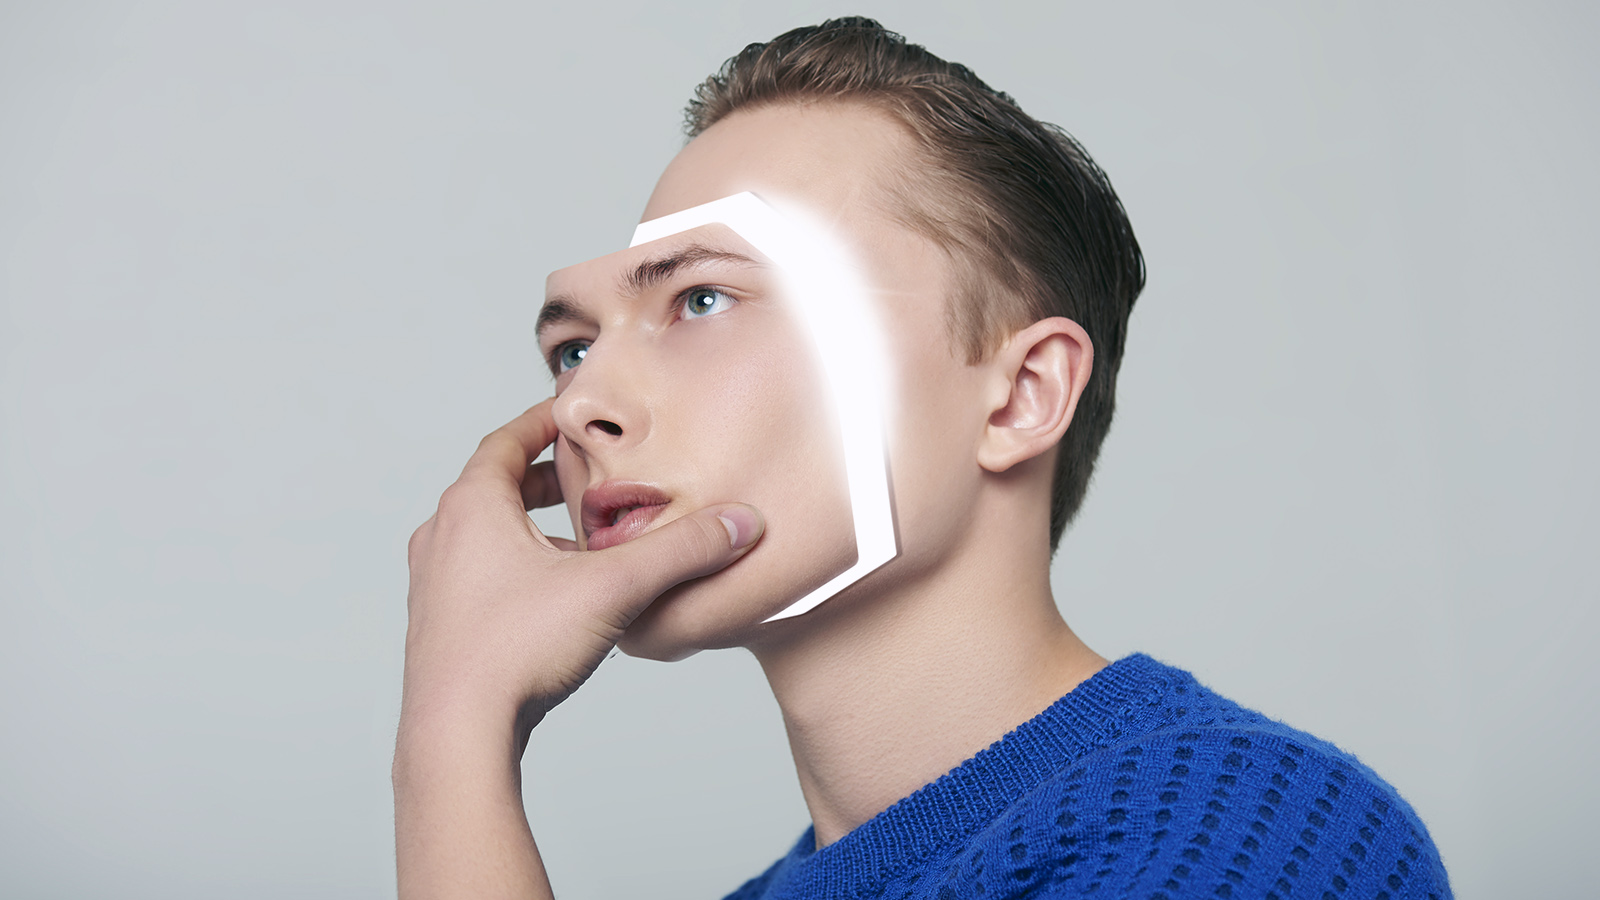 Android man removing his face